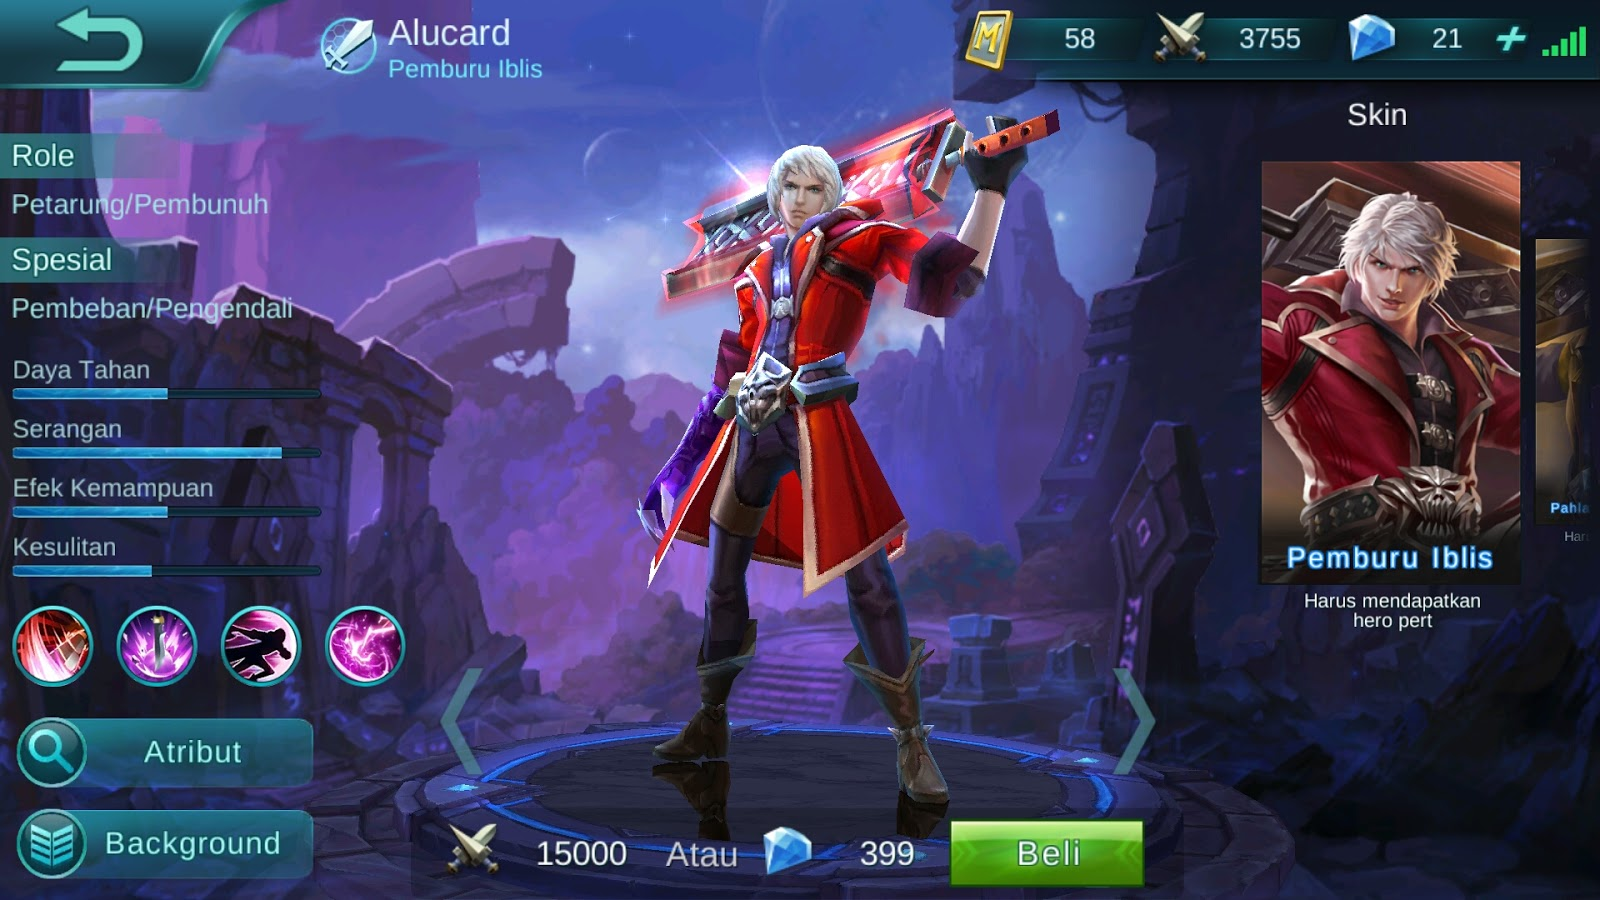 Alucard Child Of The Fall Wallpaper Hd Foto Mobile Legend Alucard Terbaru Kawan Modifikasi